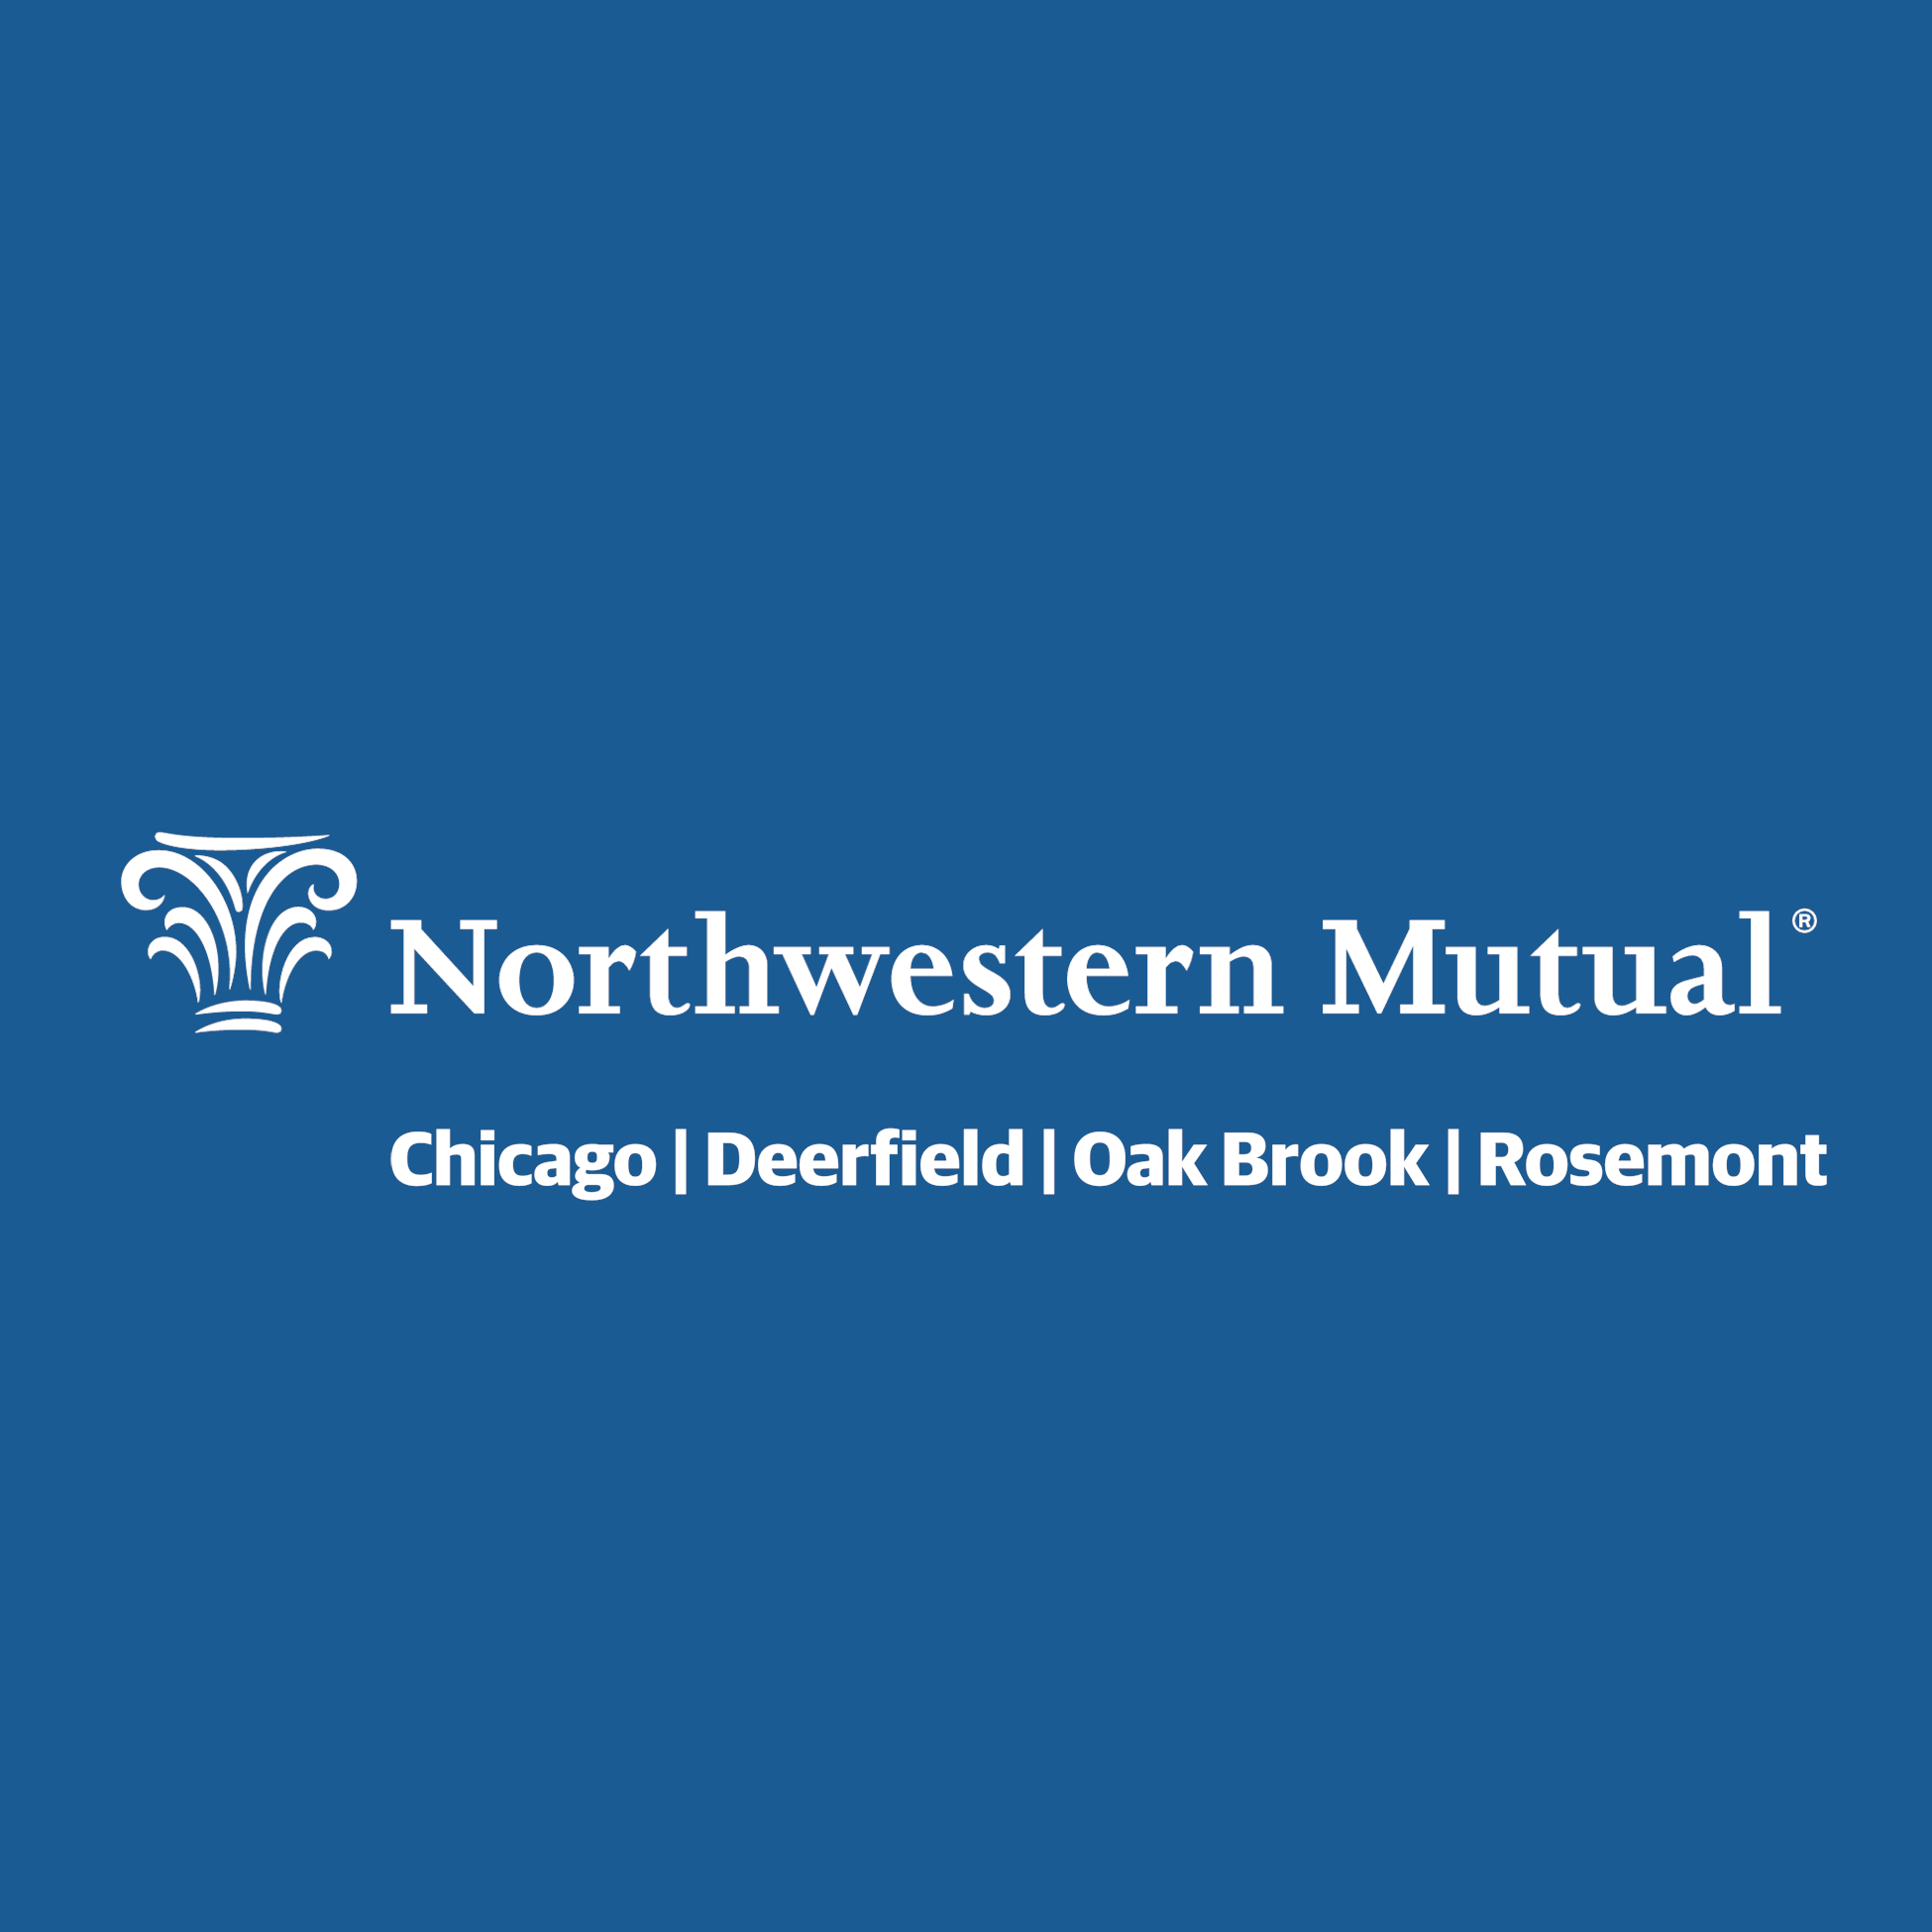 Northenwestern Mutual